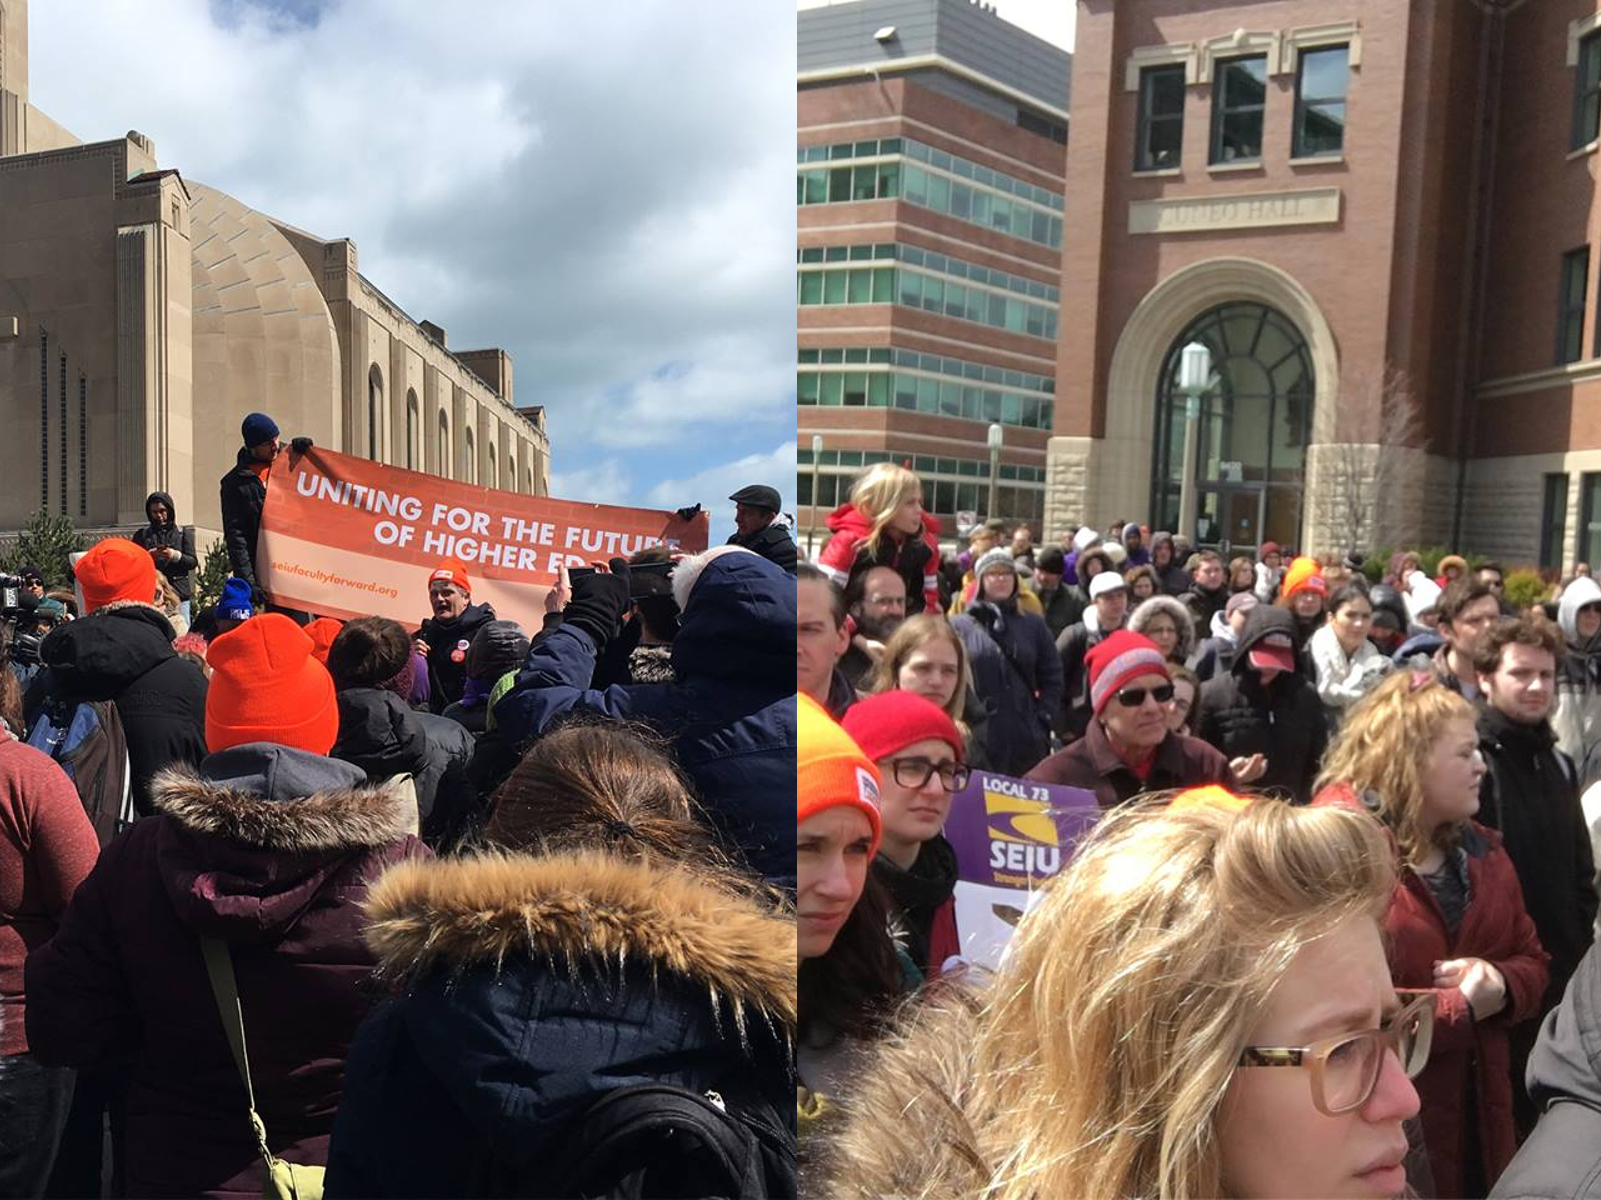 Academic workers at Loyola University Chicago stage walk out